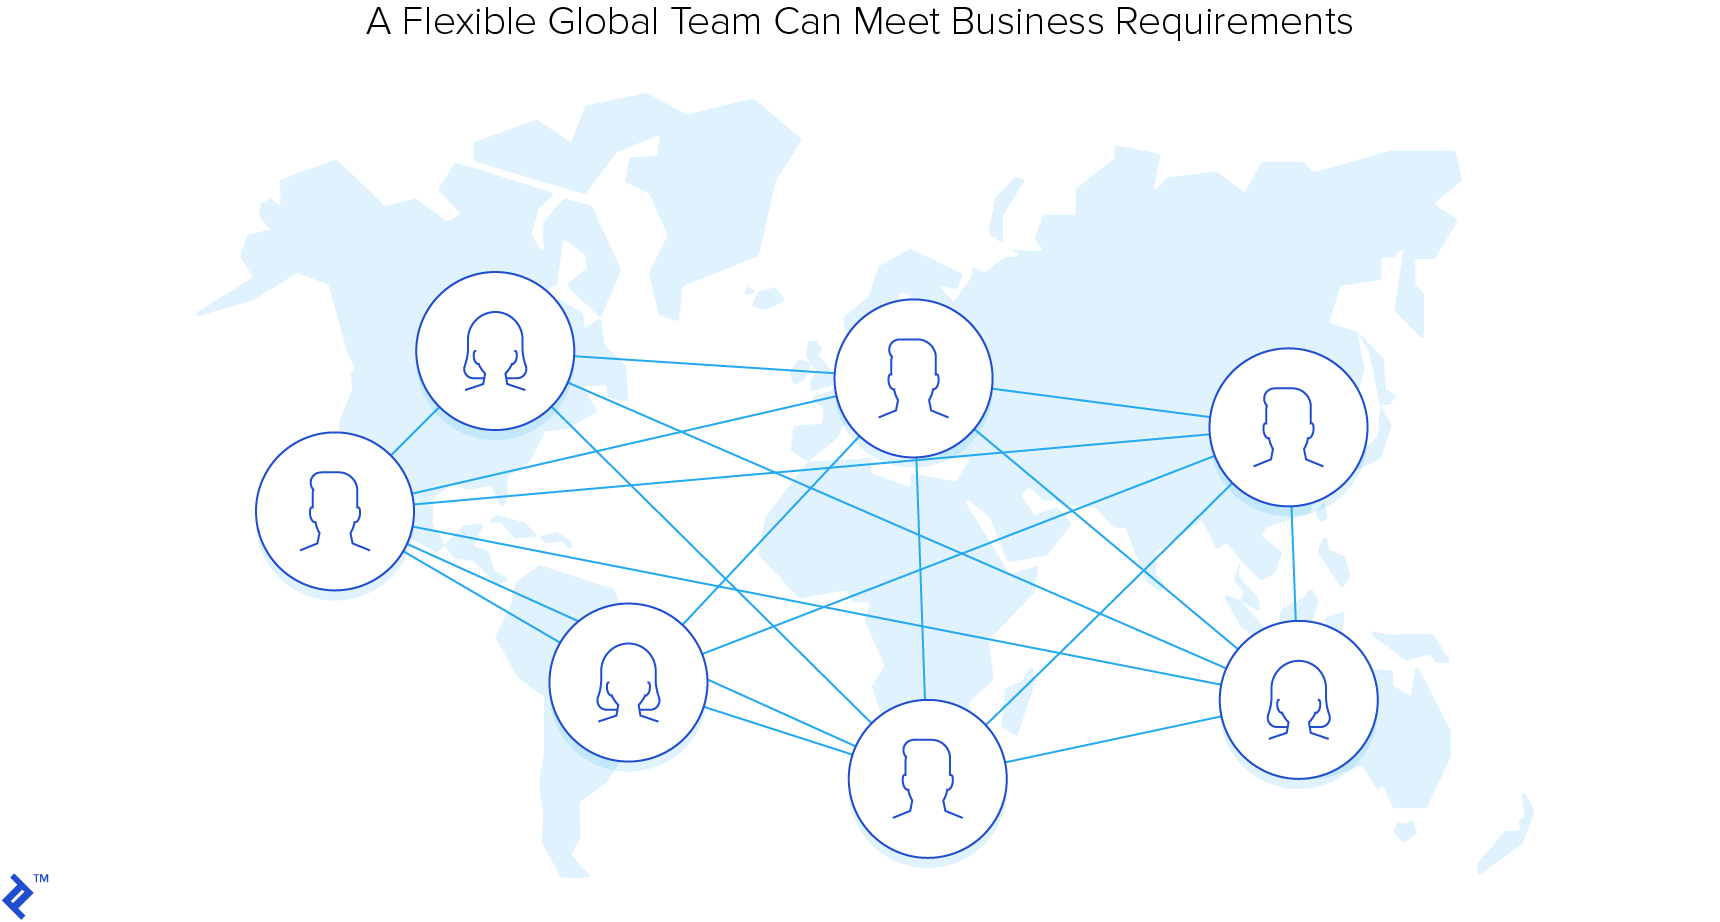 A flexible, global team can meet business requirements.